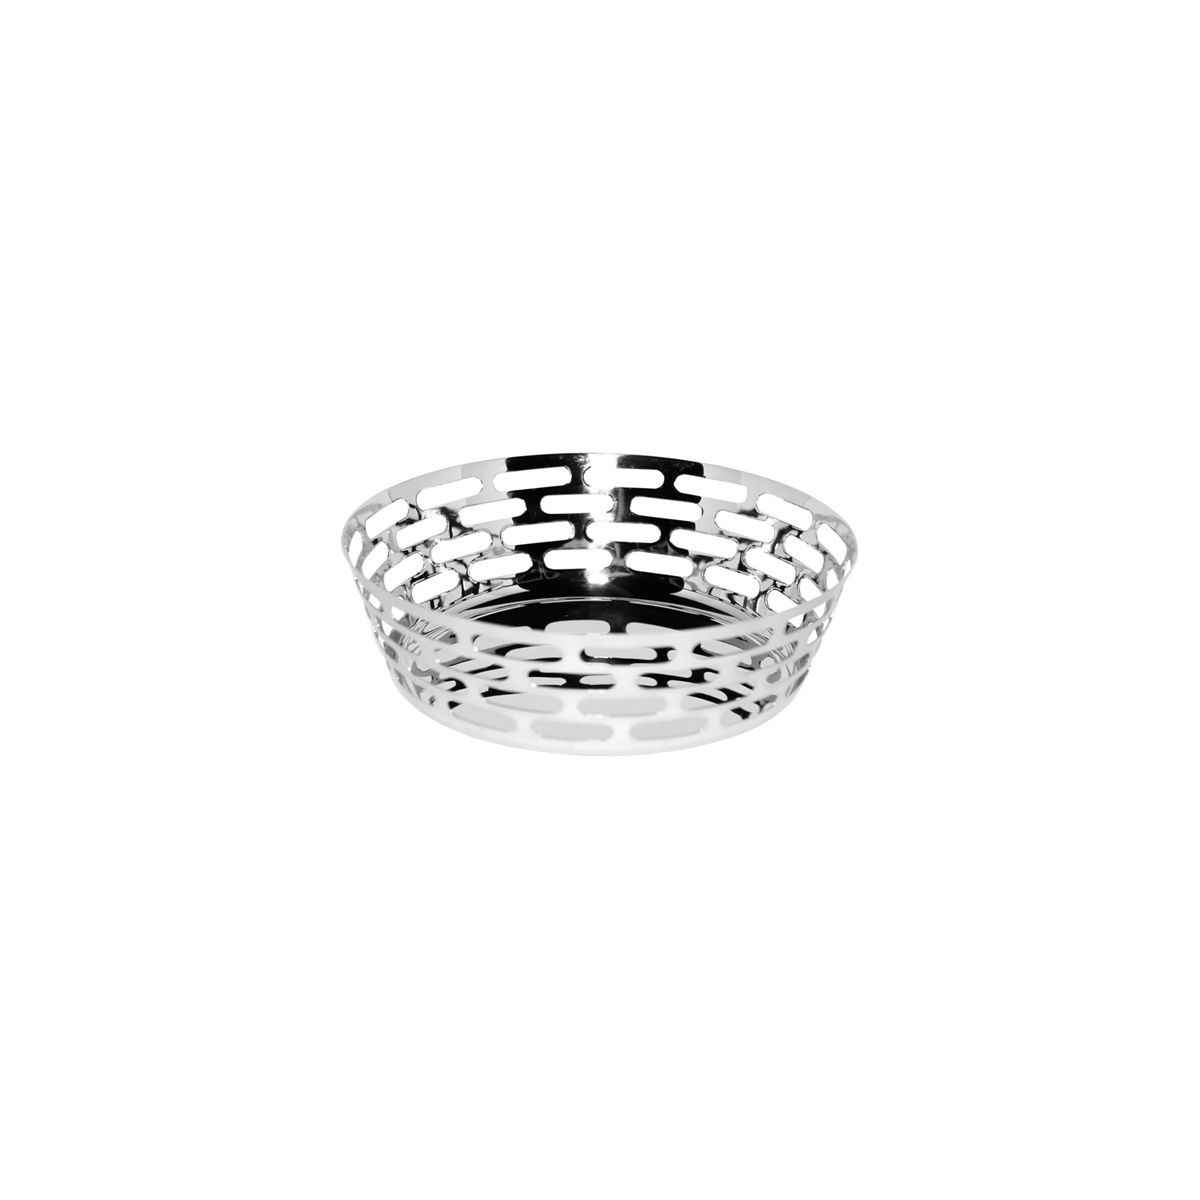 Service Ideas SM-75 Small Stainless Steel Bread Basket